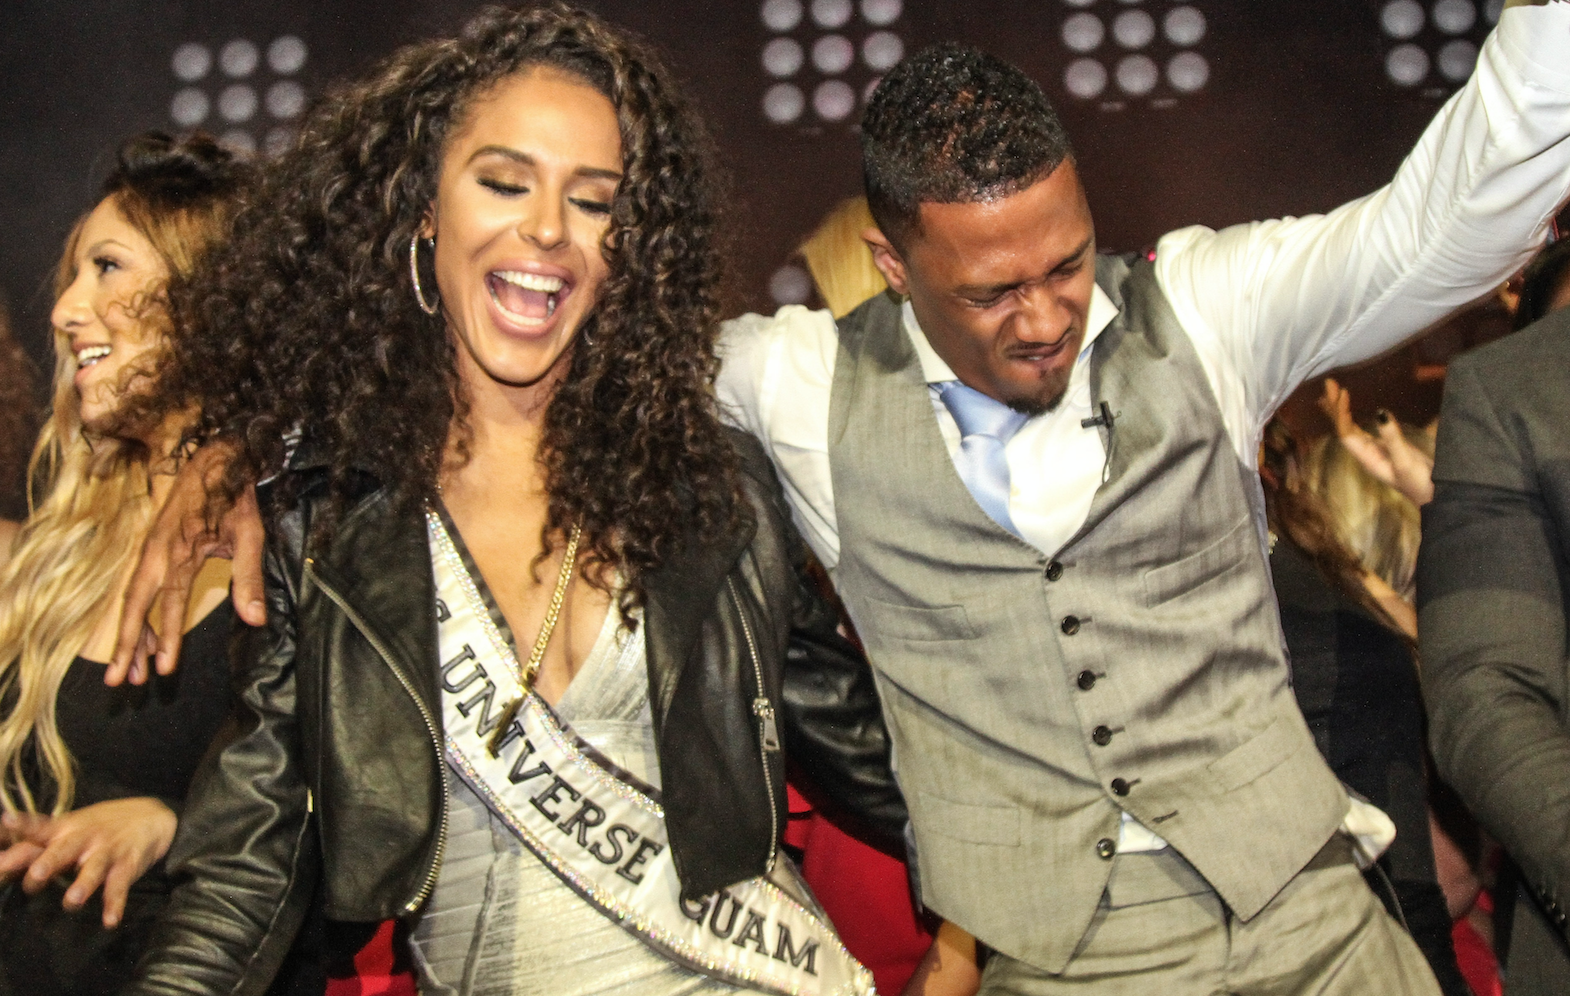 The Real Reason Everyone Thinks Nick Cannon Got His Ex